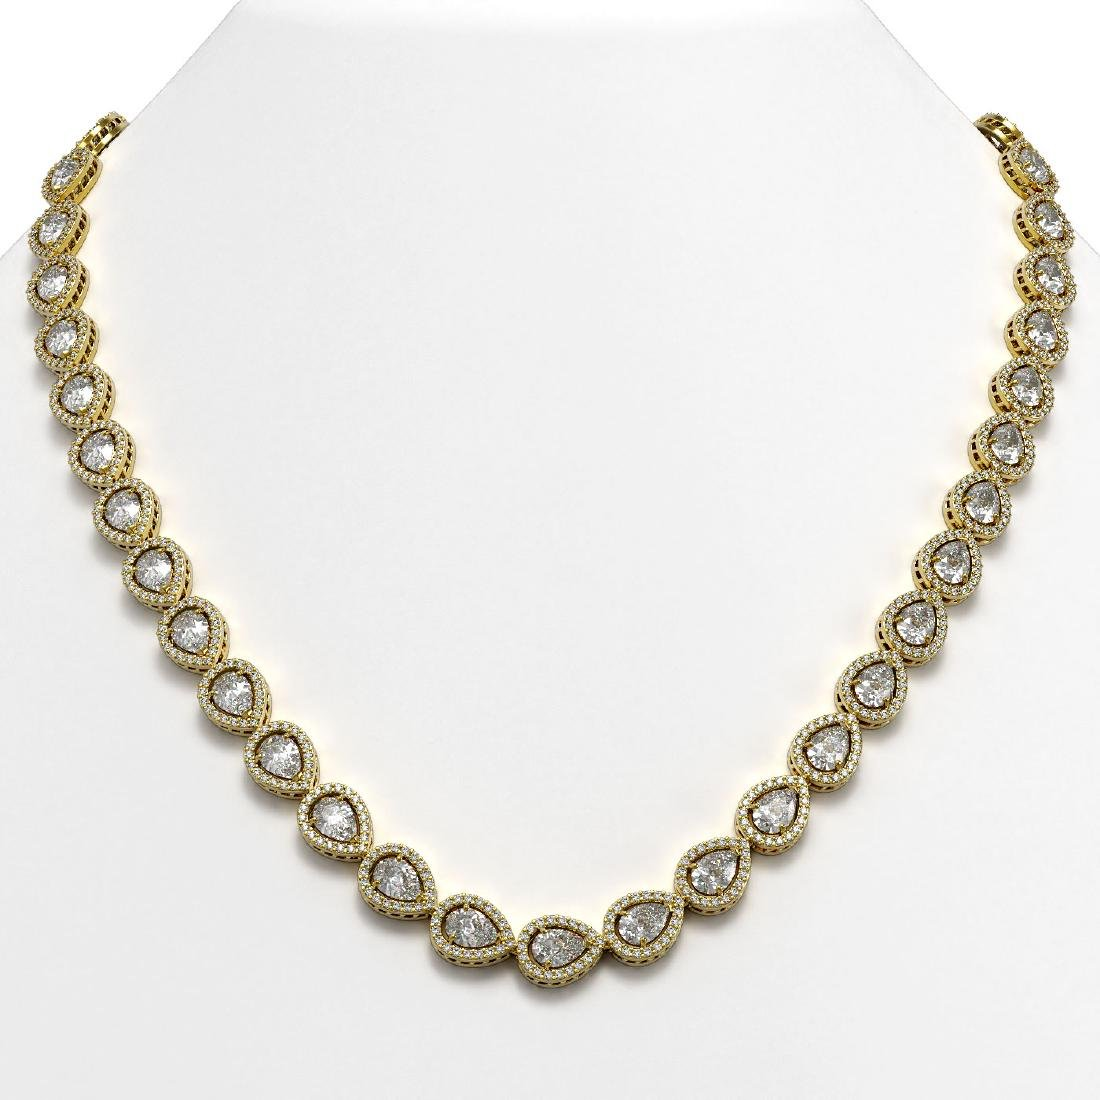 33.08 CTW Pear Diamond Designer Necklace 18K Yellow